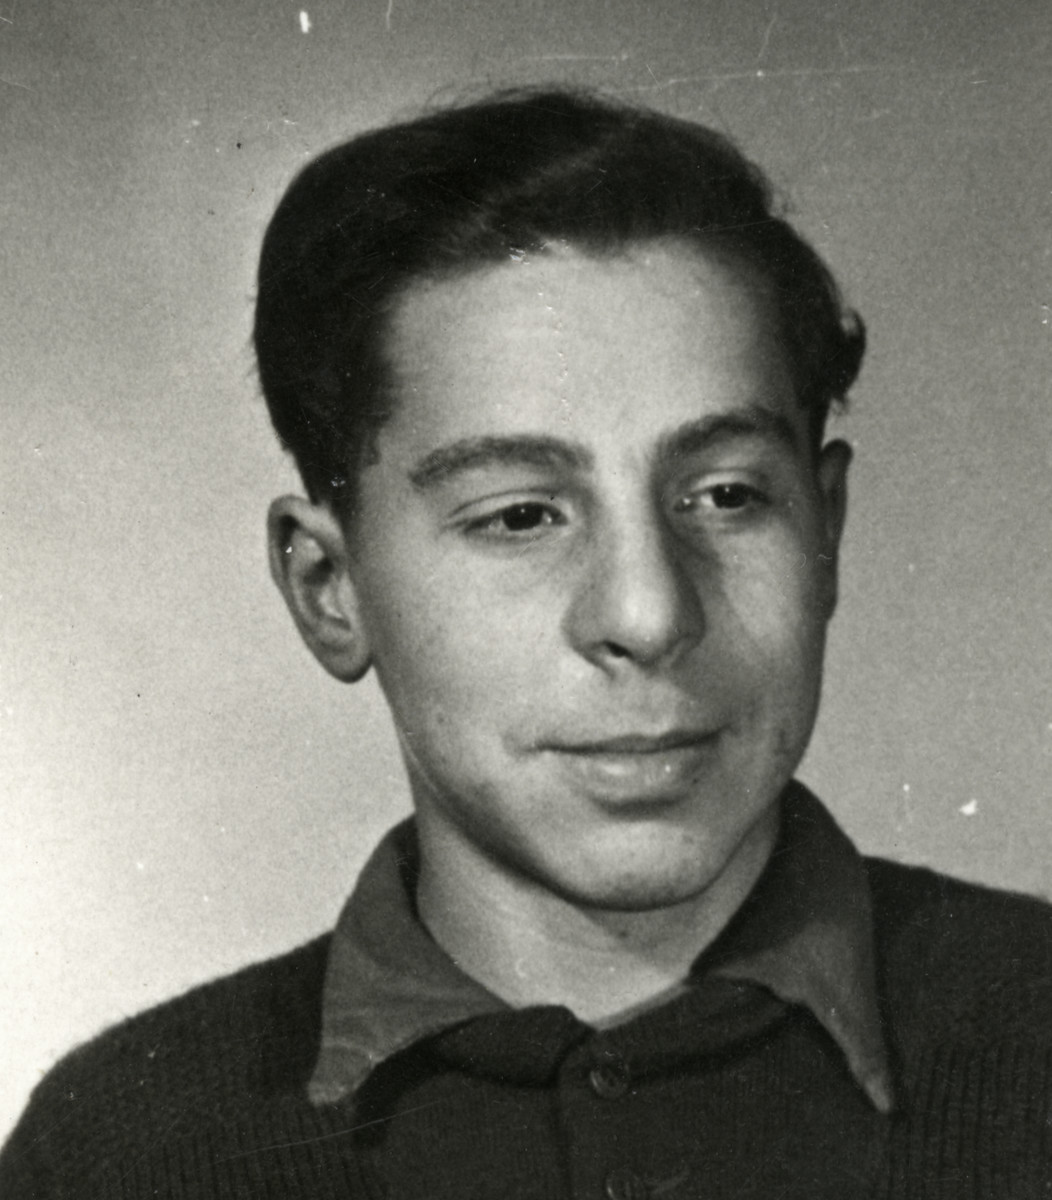 Studio portrait of Willy, one of the Buchenwald Boys.